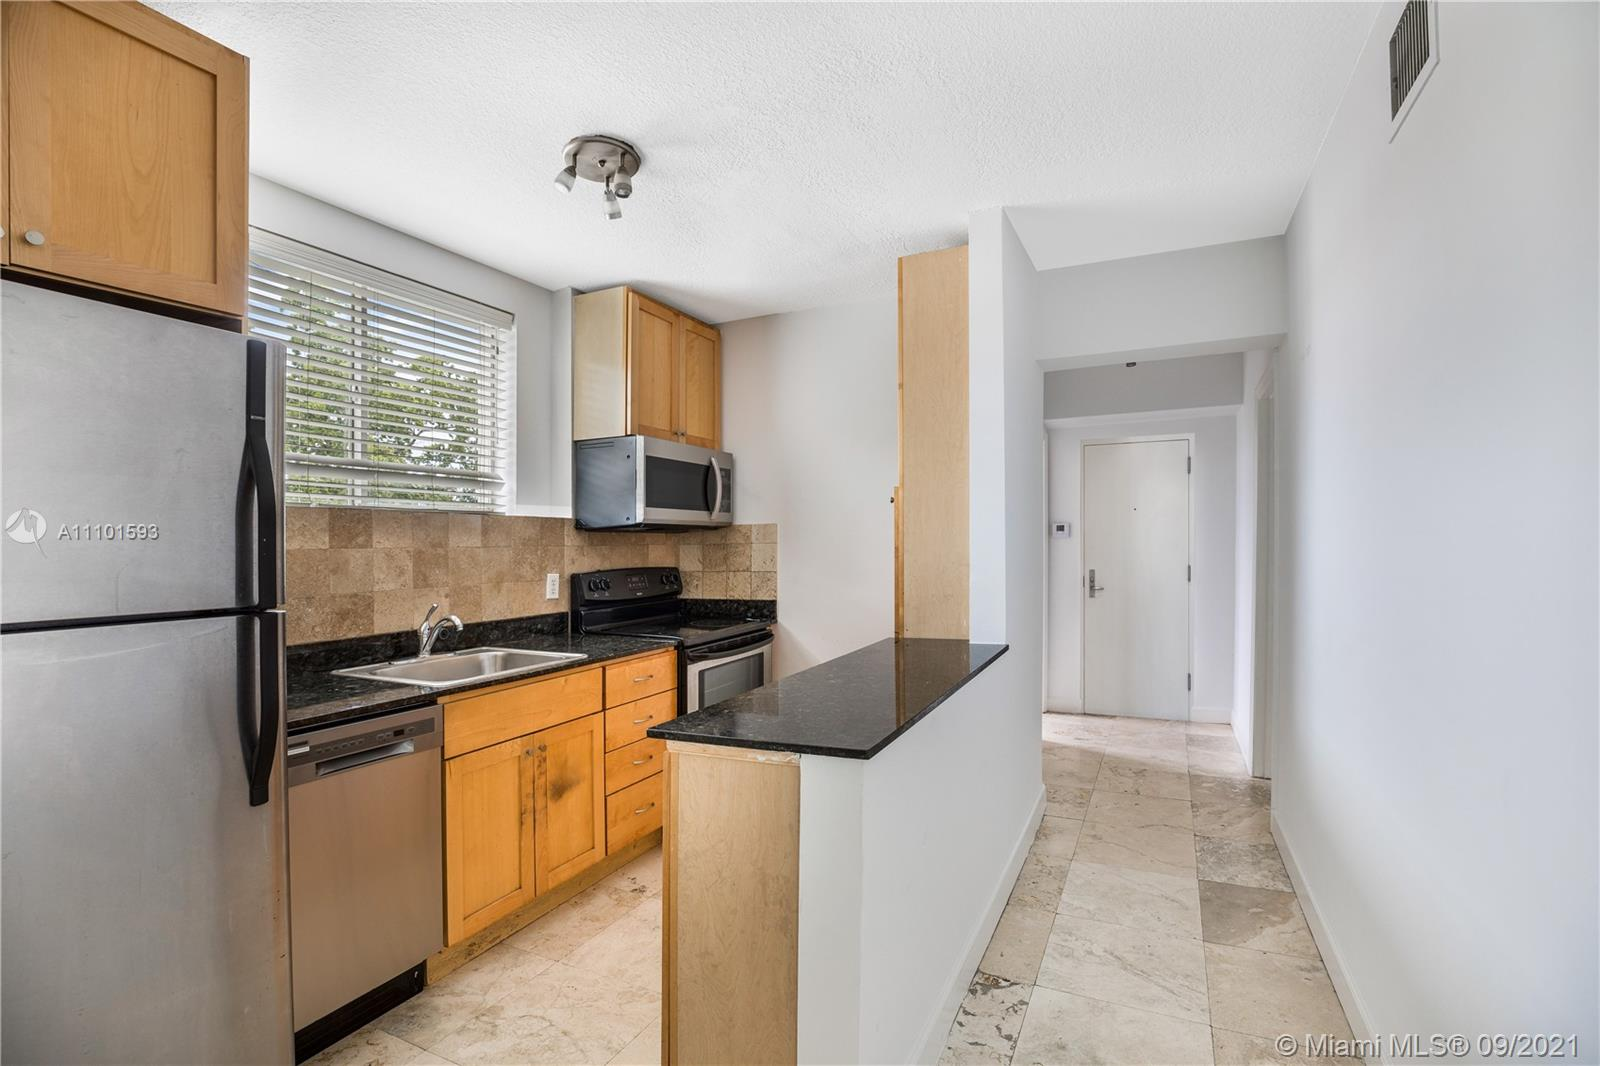 1025 SW 7th Ave #9 For Sale A11101593, FL